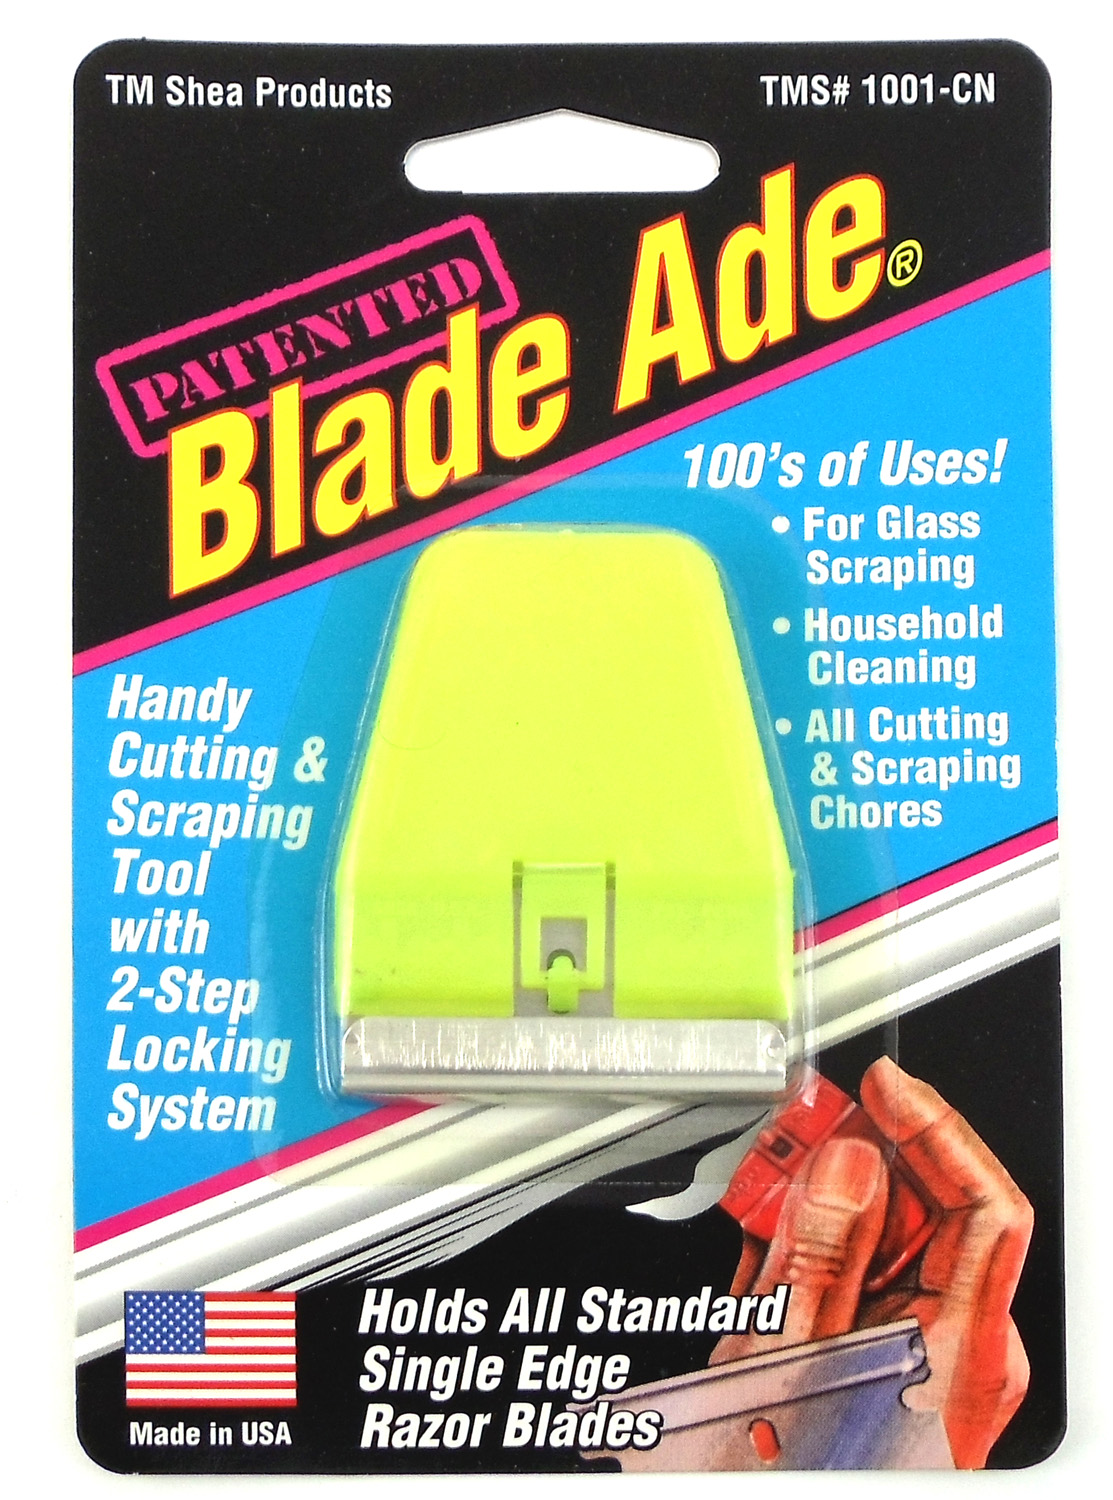 08601001 - Blade-Ade Handy Scraper & Cutting Tool - Carded (08601001)